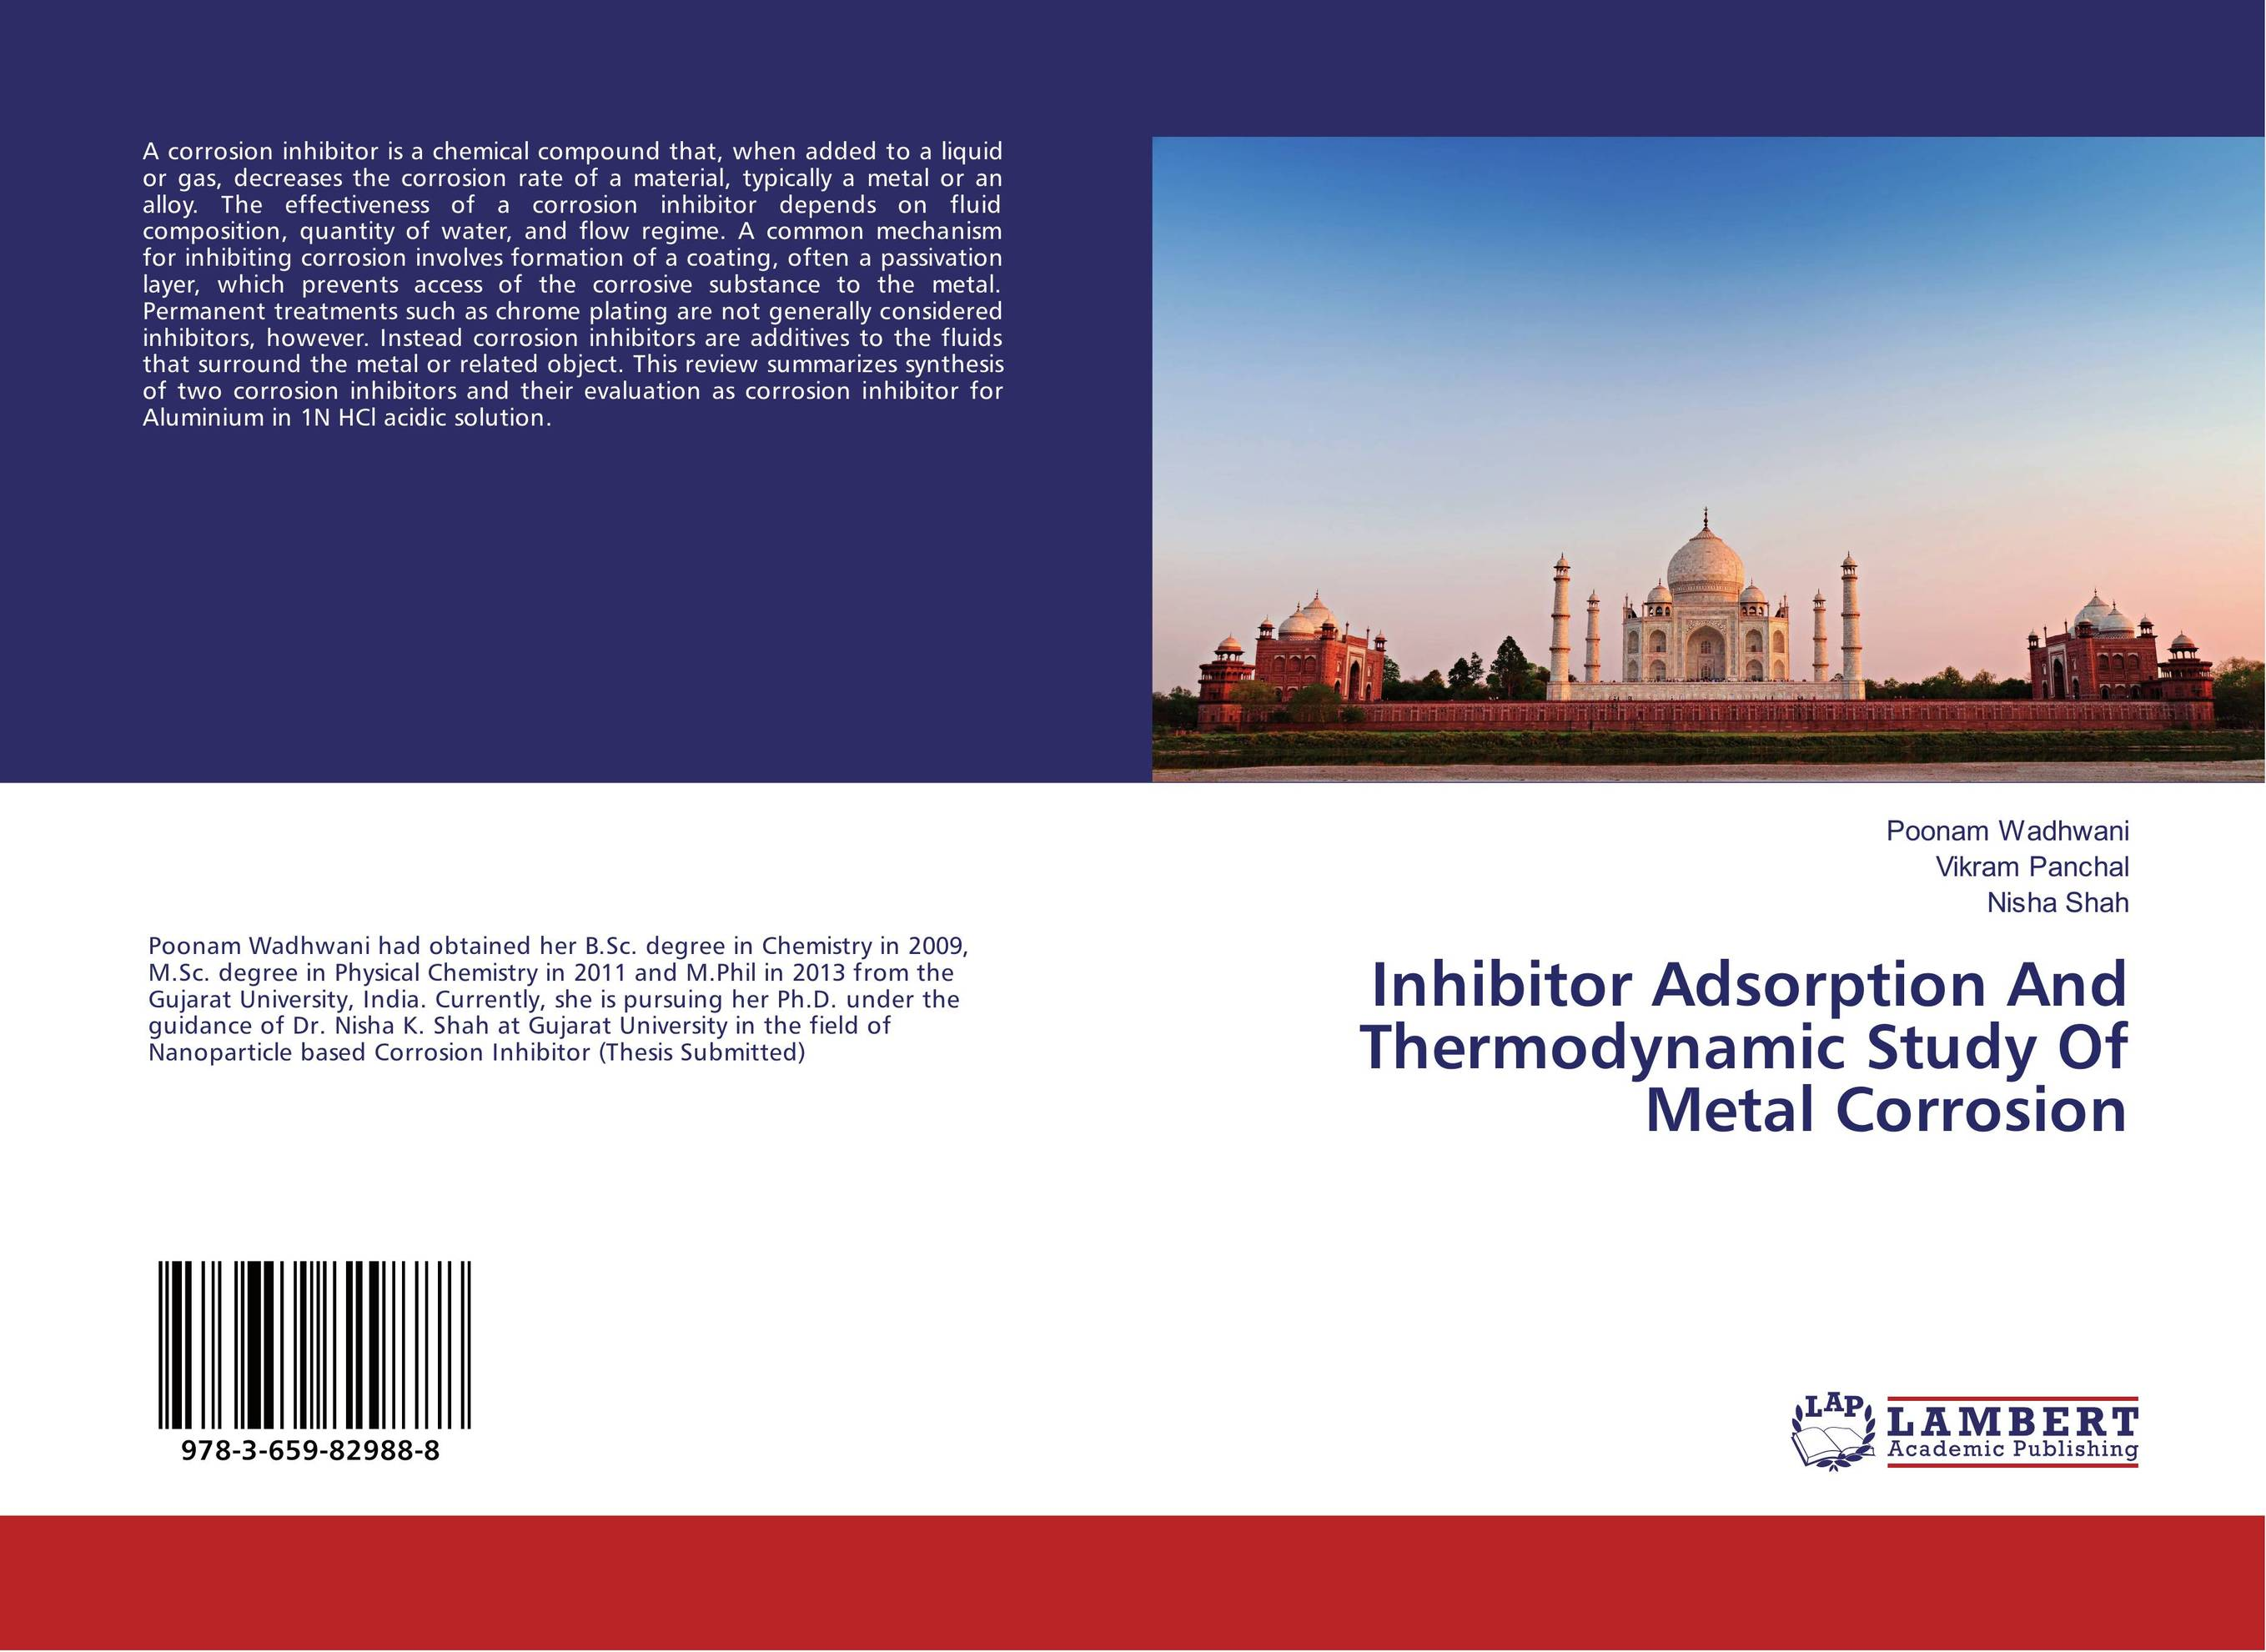 Inhibitor Adsorption And Thermodynamic Study Of Metal Corrosion thermodynamic and economic evaluation of co2 refrigeration systems